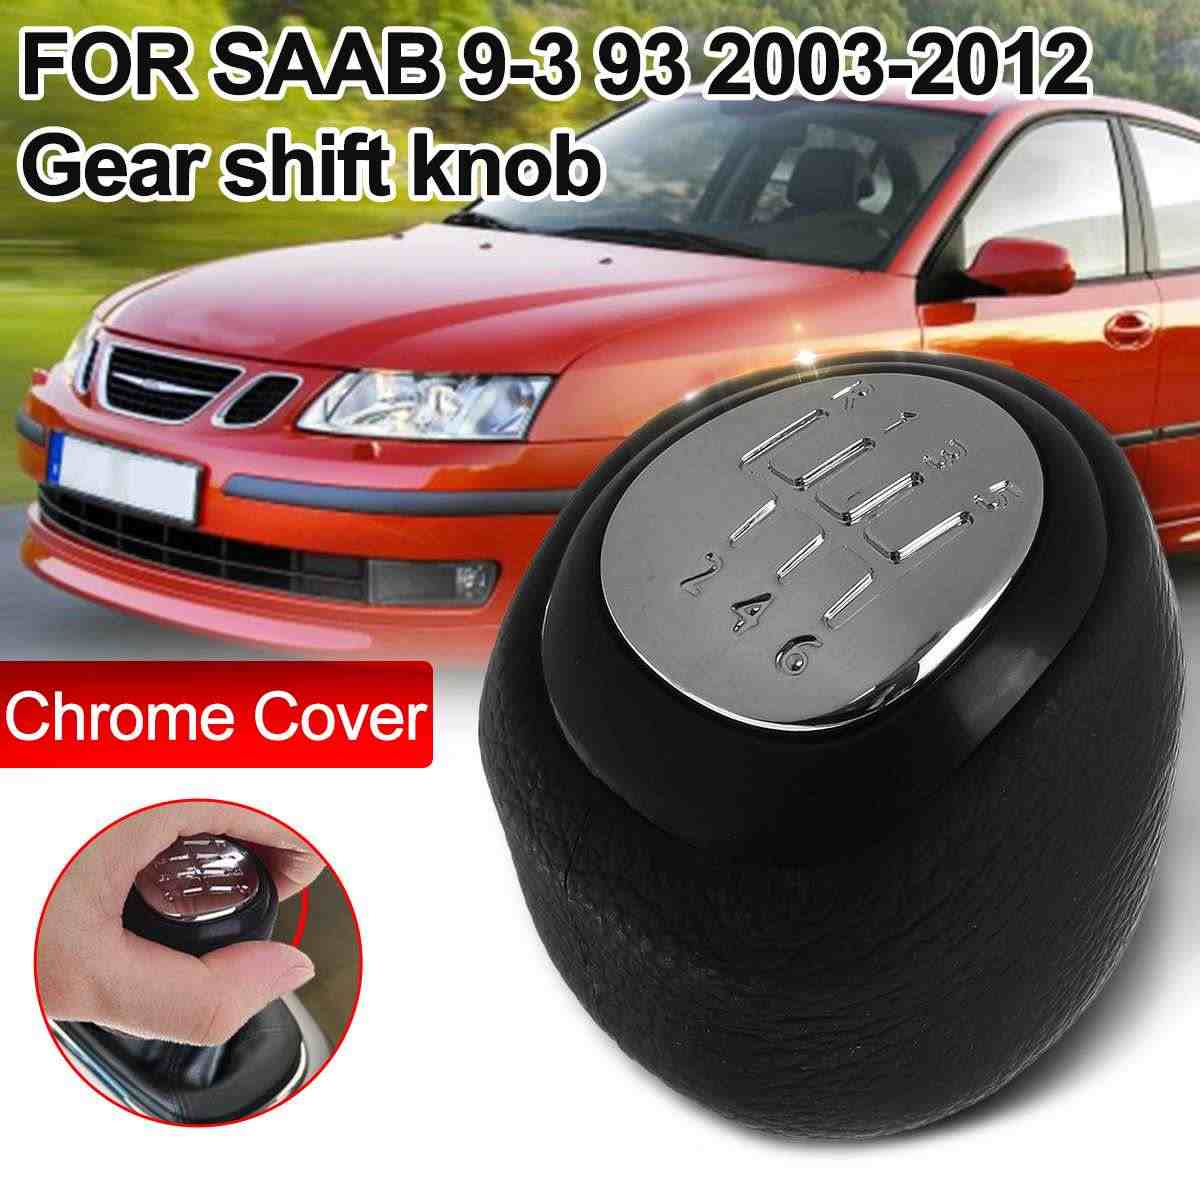 6 Speed Glossy Chrome Gear Knob Car Accessories FOR SAAB 9-3 93 2003-2012 55566207 55353898